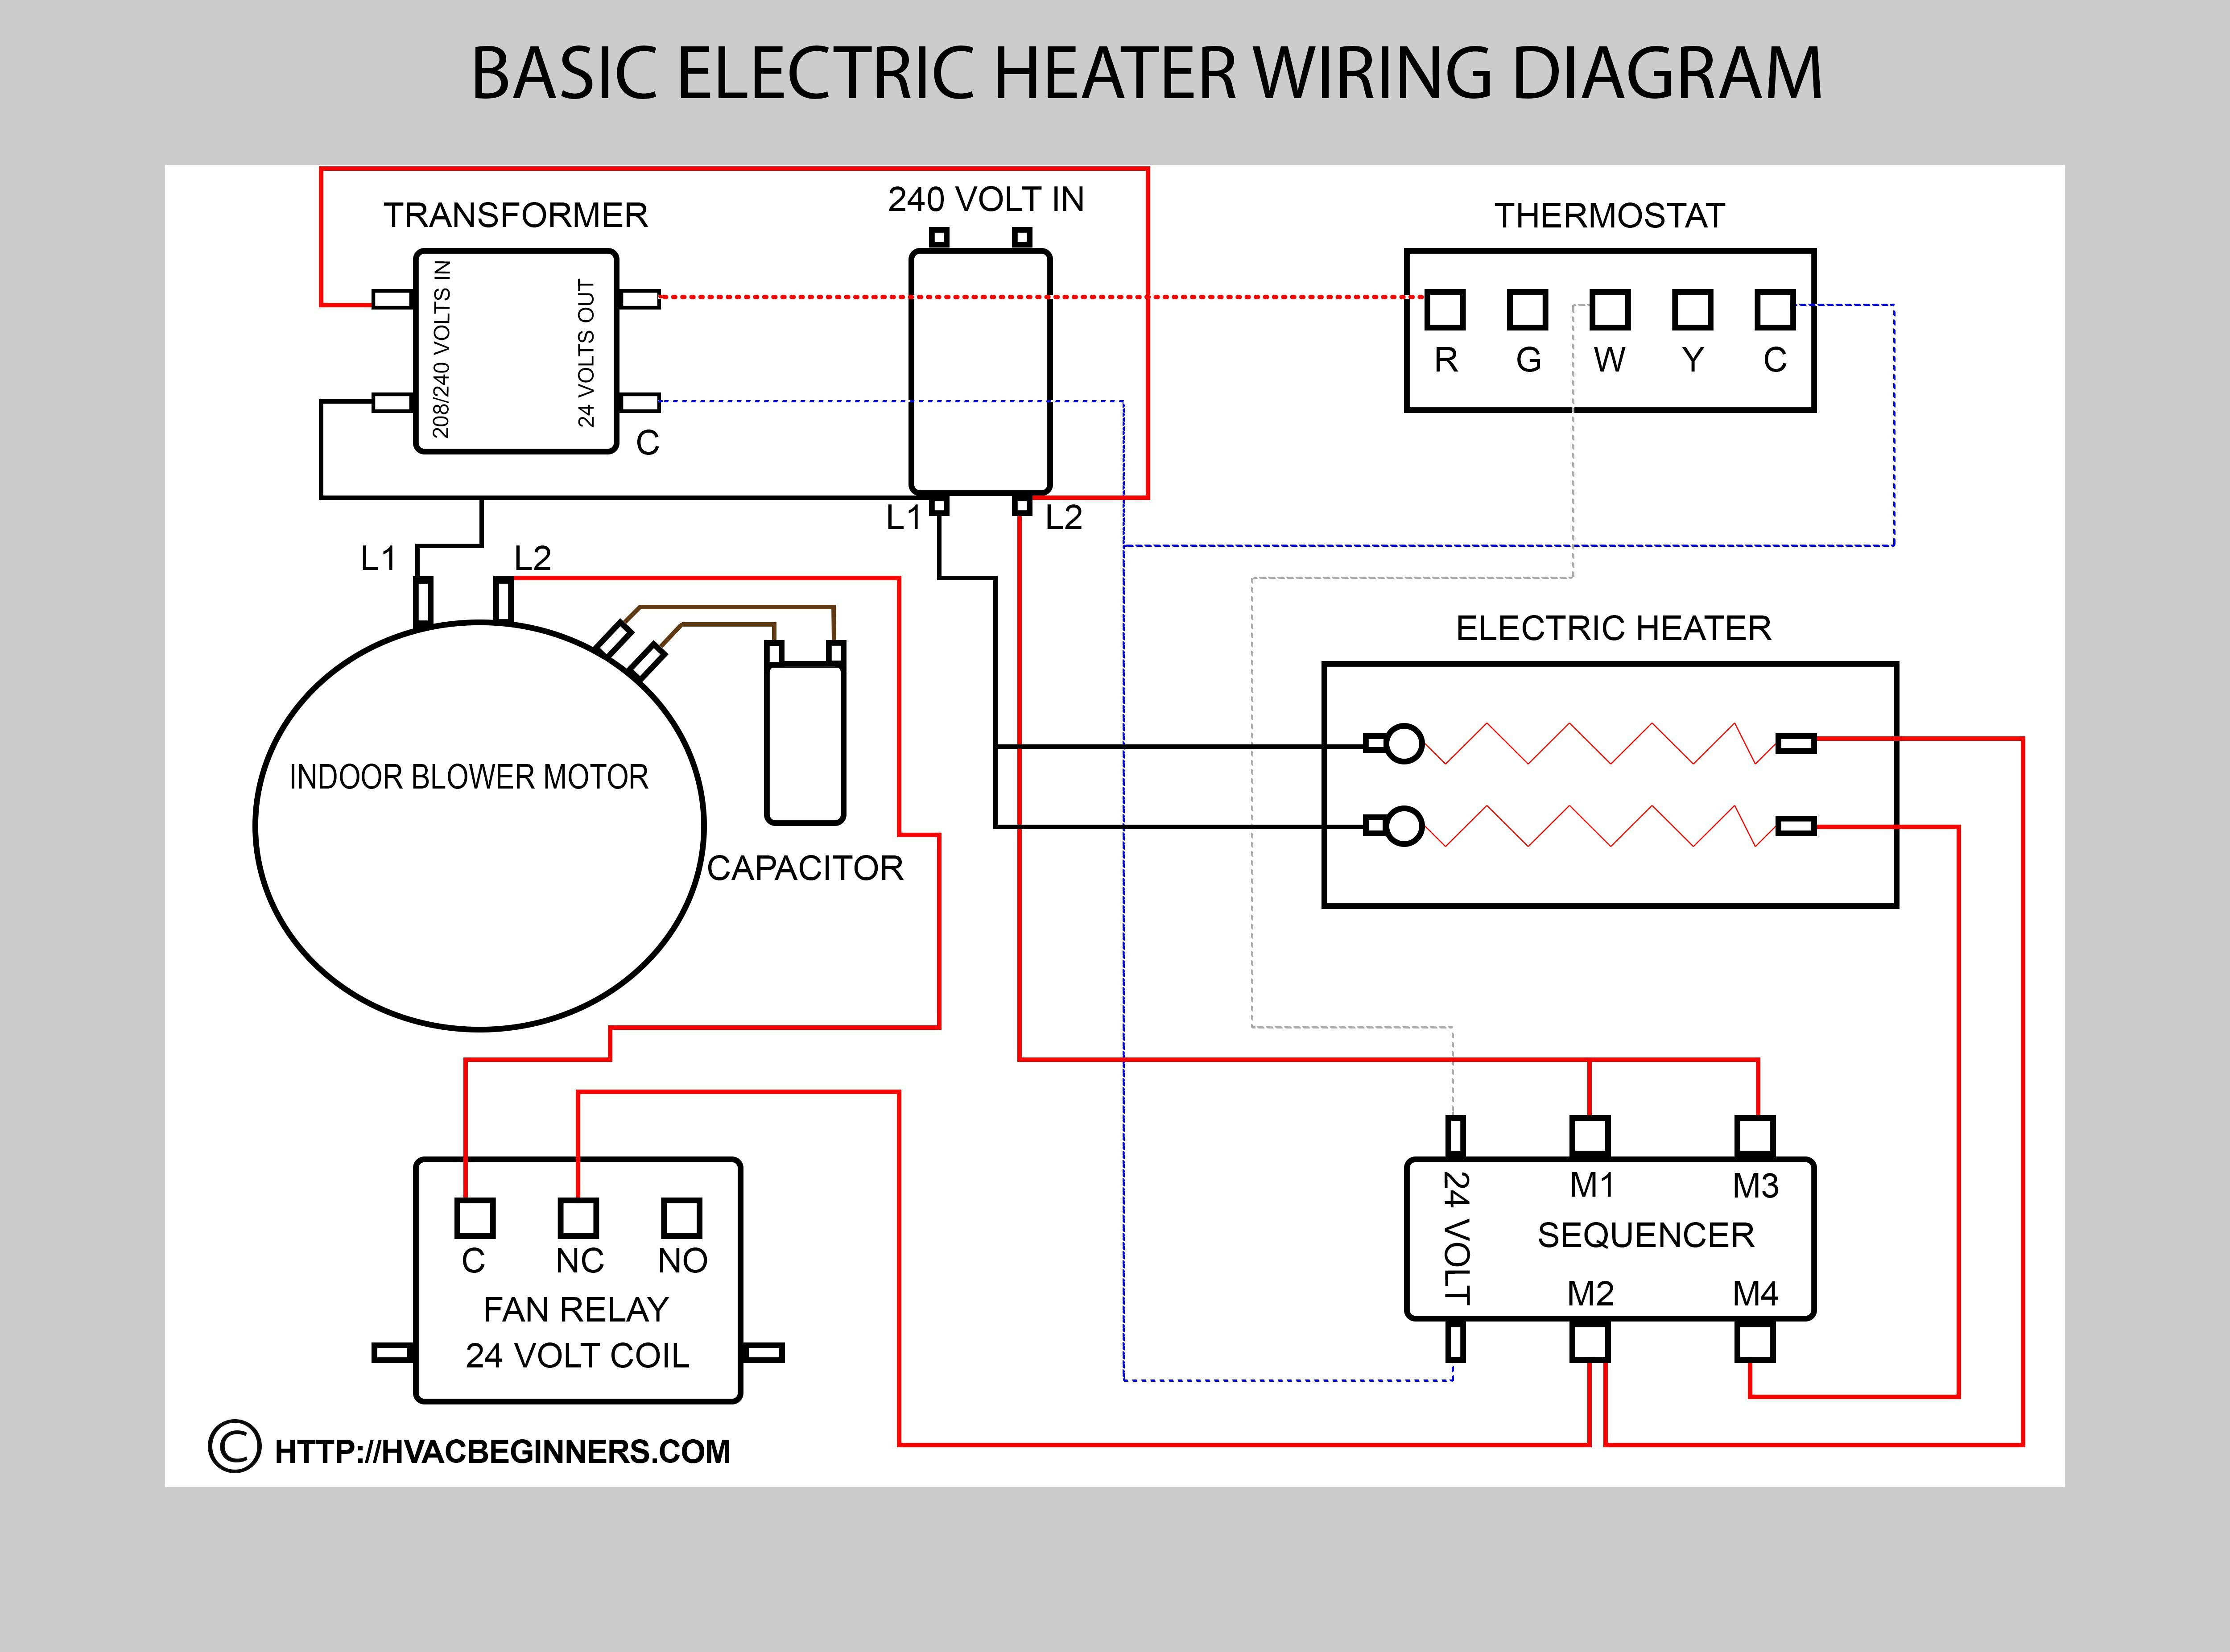 Wiring-diagram-rainbow-thermostat & Water Heater Propane / Electric ...